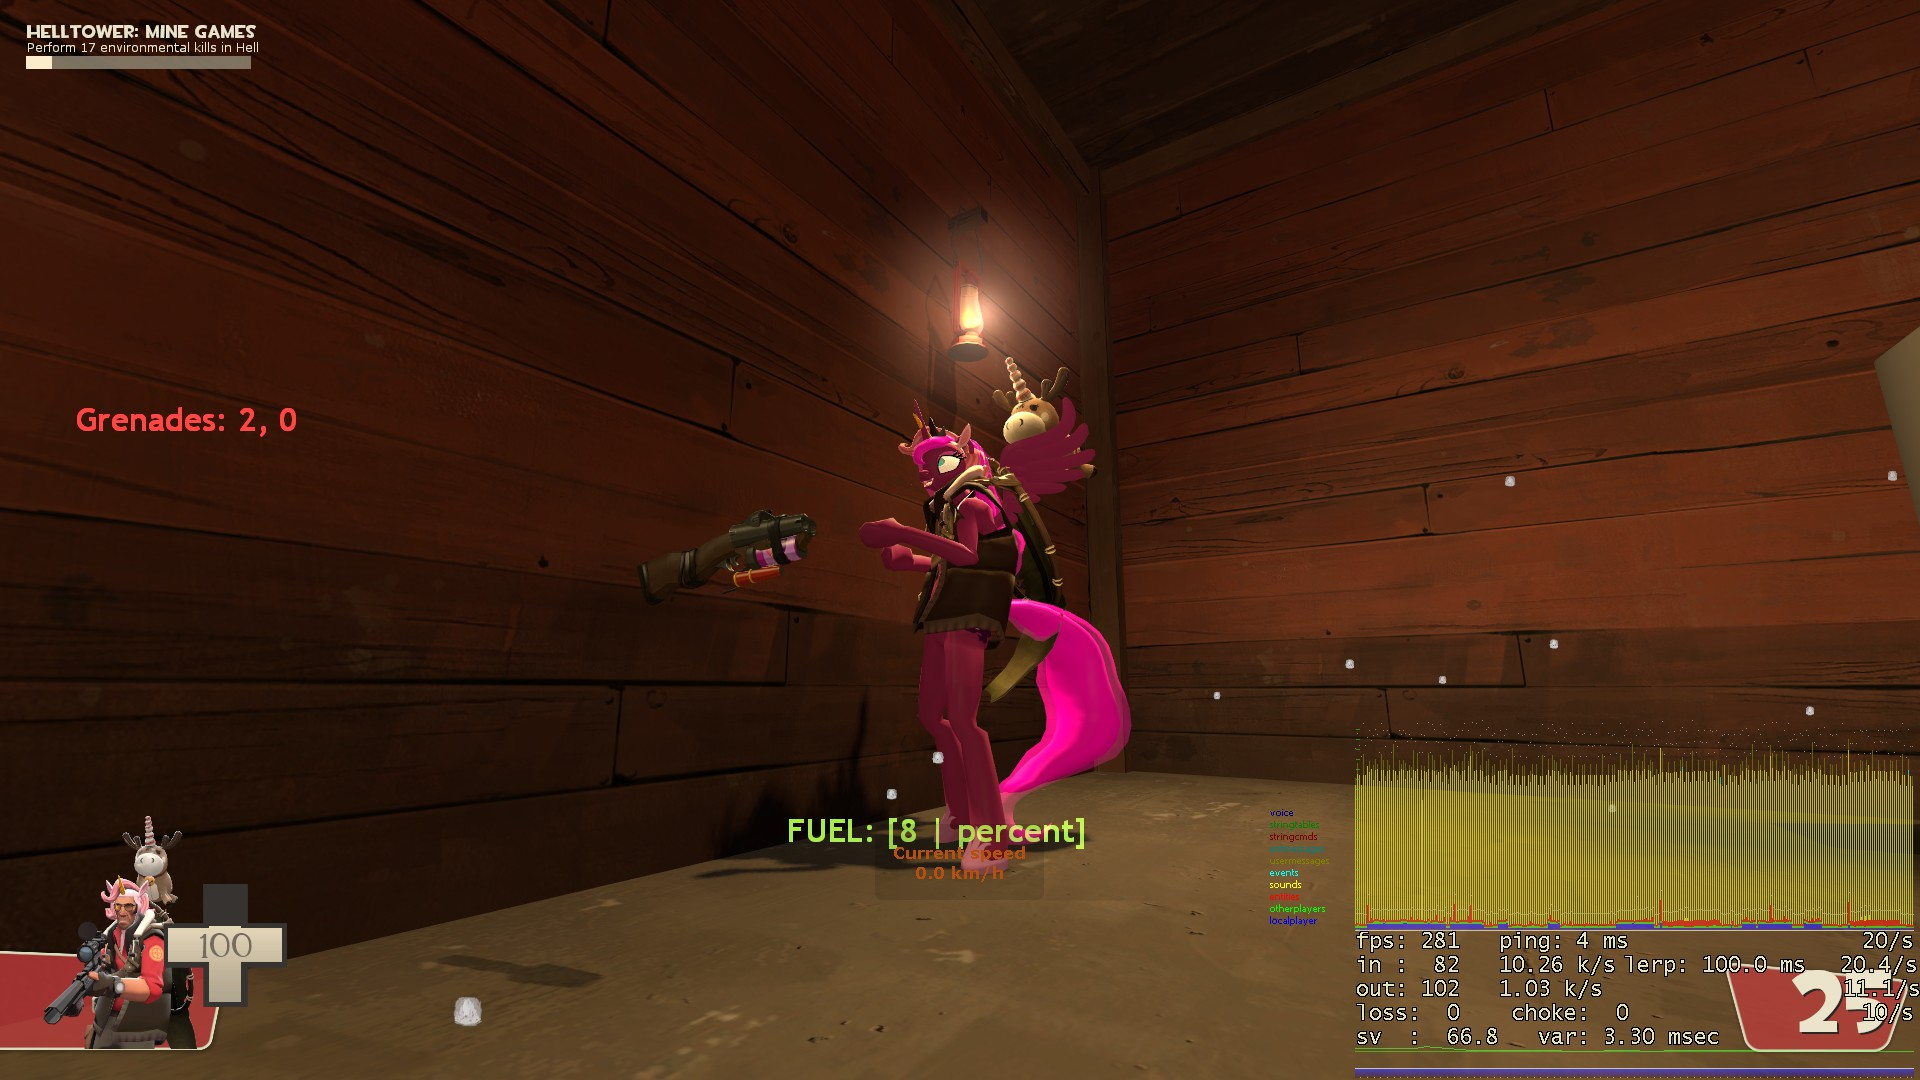 TF2] Bots are invisible - AlliedModders